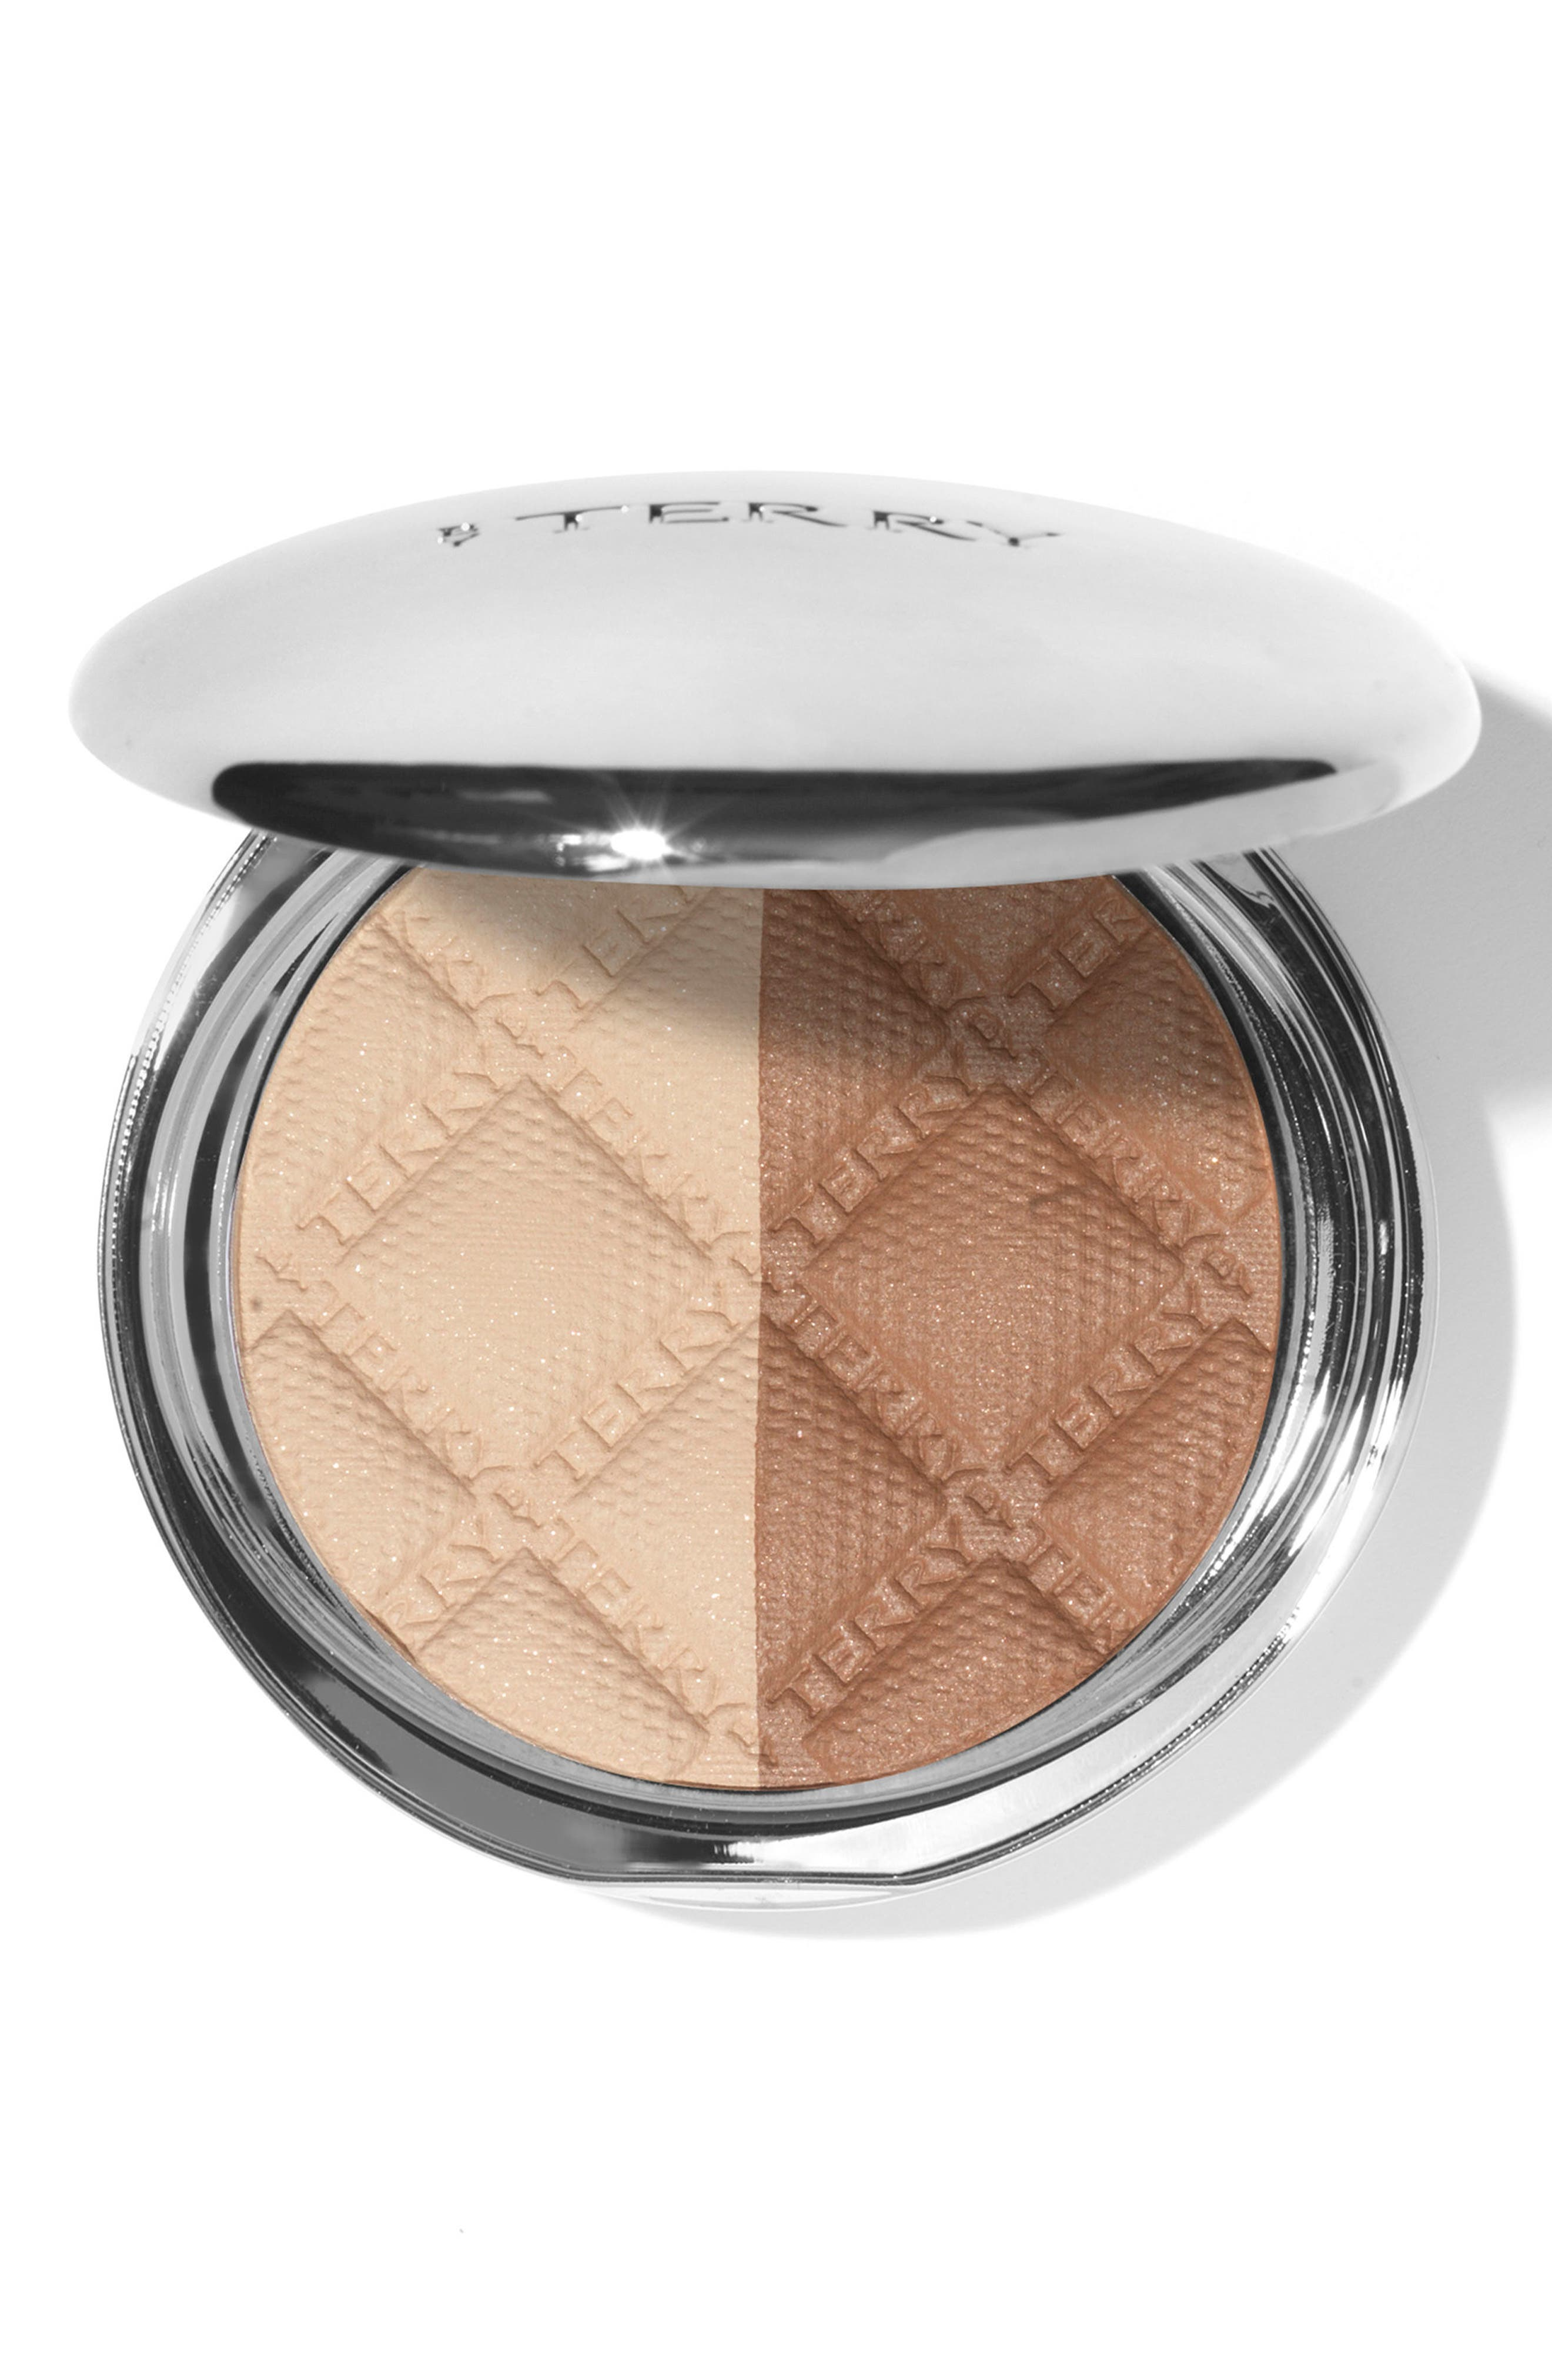 SPACE.NK.apothecary By Terry Terrybly Densiliss Contouring Compact,                             Main thumbnail 1, color,                             200 Beige Contrast